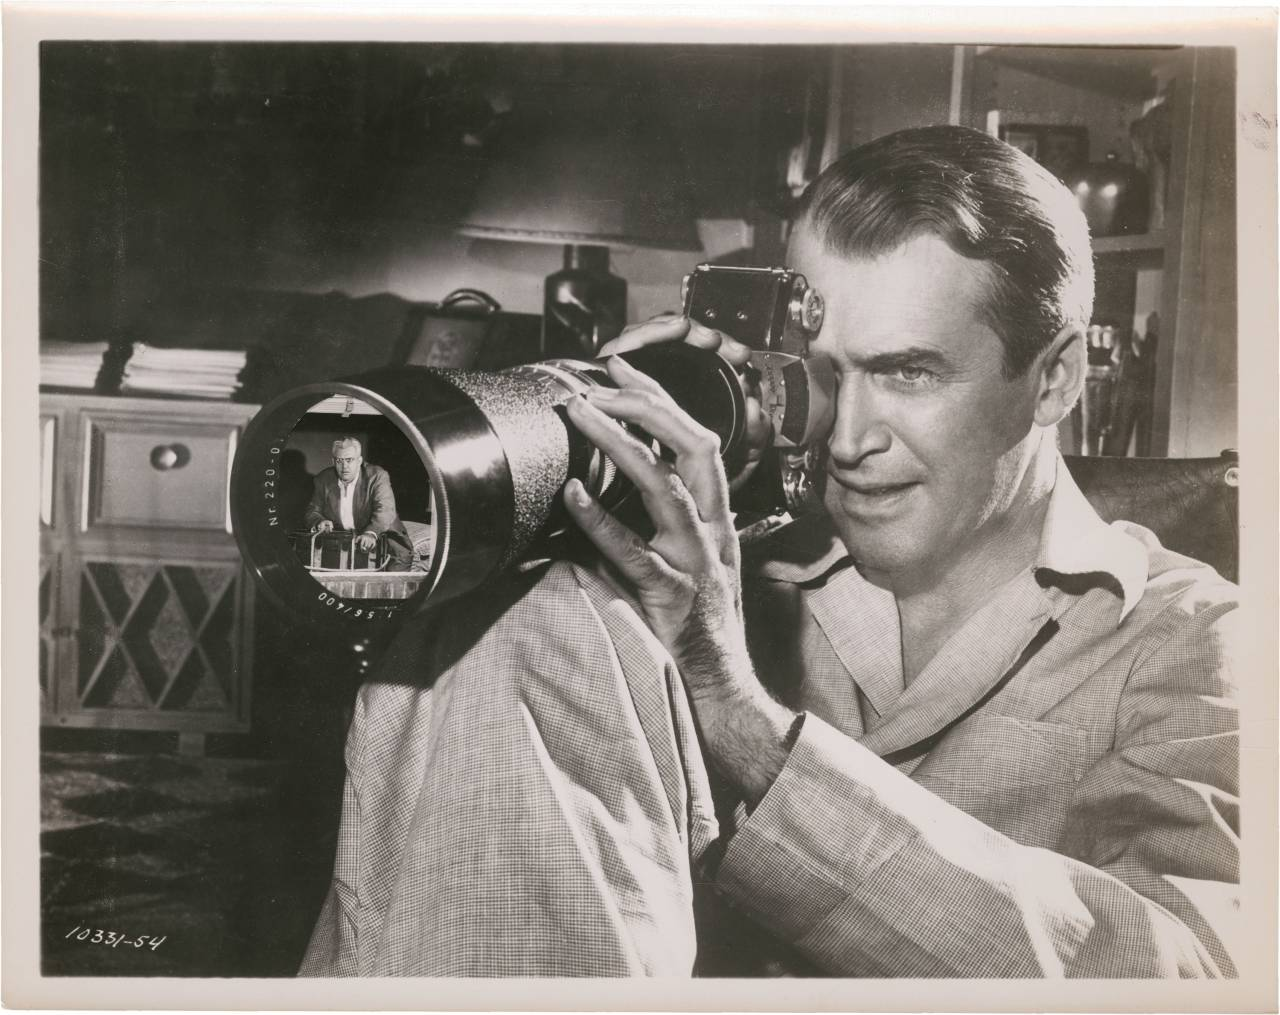 James Stewart in Rear window directed by Alfred Hitchcock, 1954